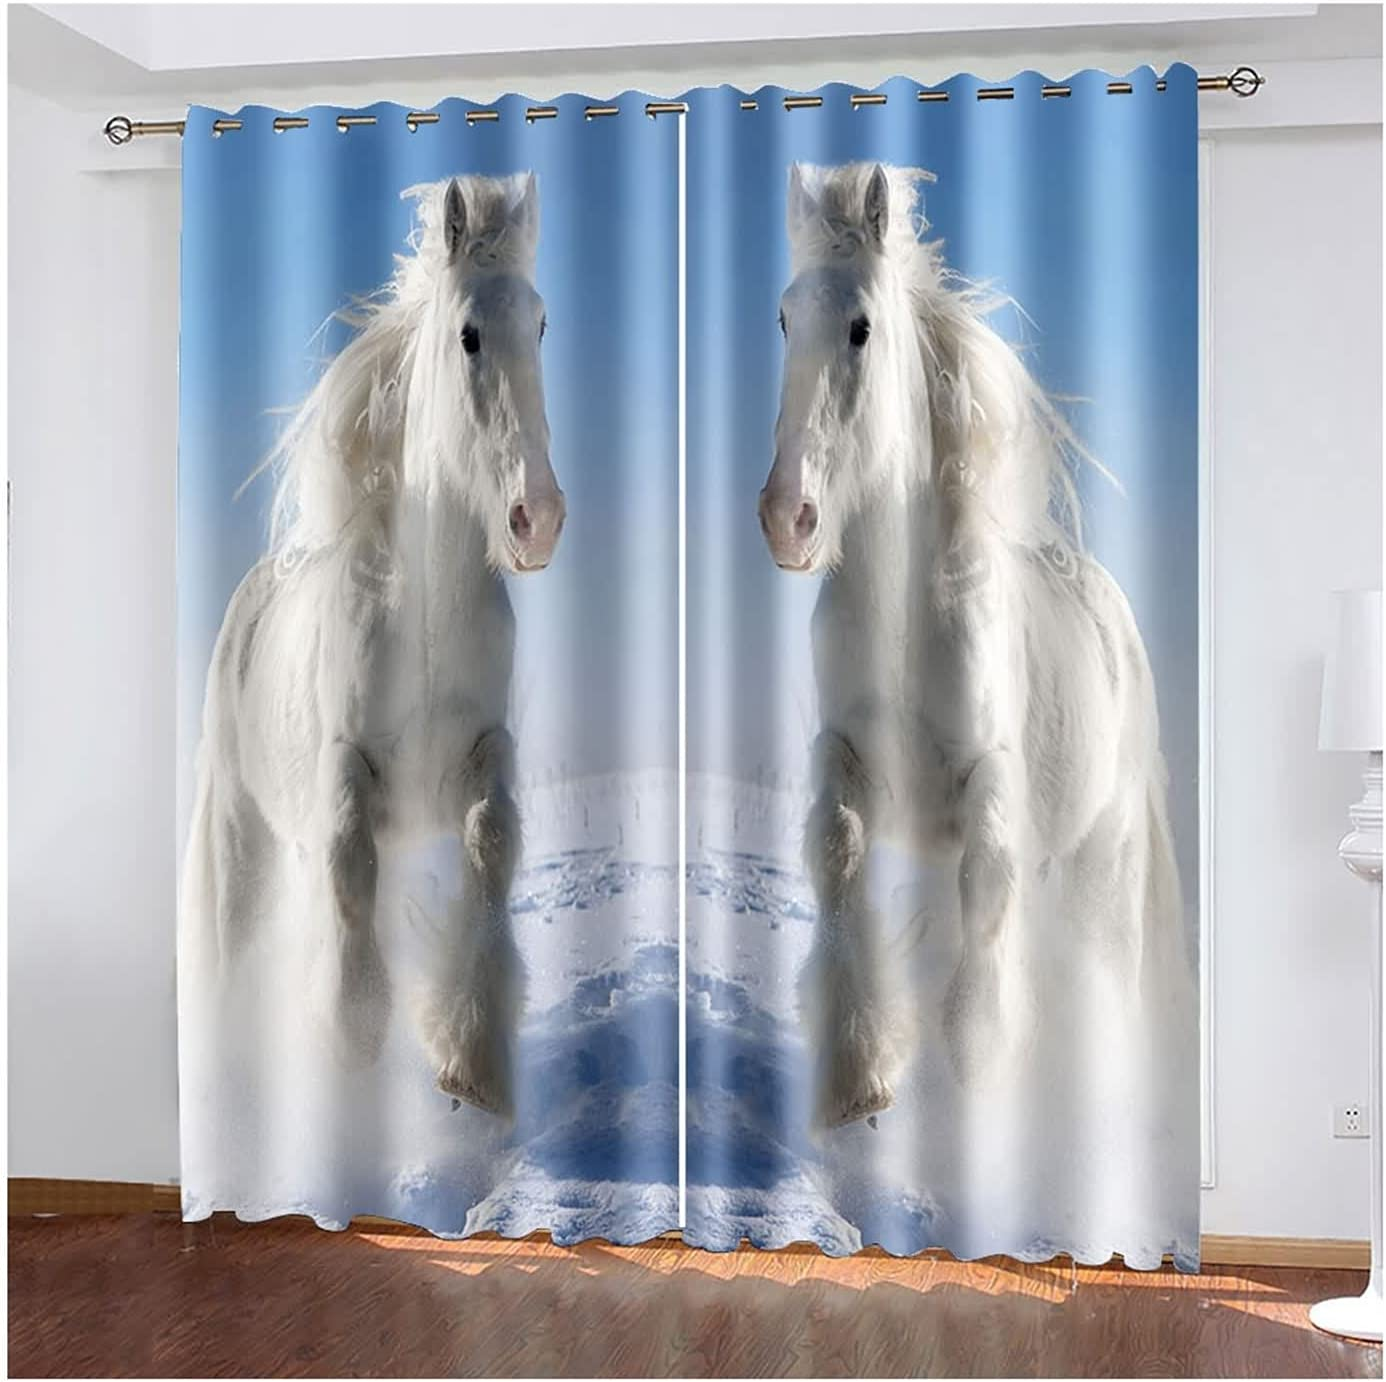 Curtain for 2021 new Living Room 2 Curtains Darkening Bedroom Panels Special Campaign